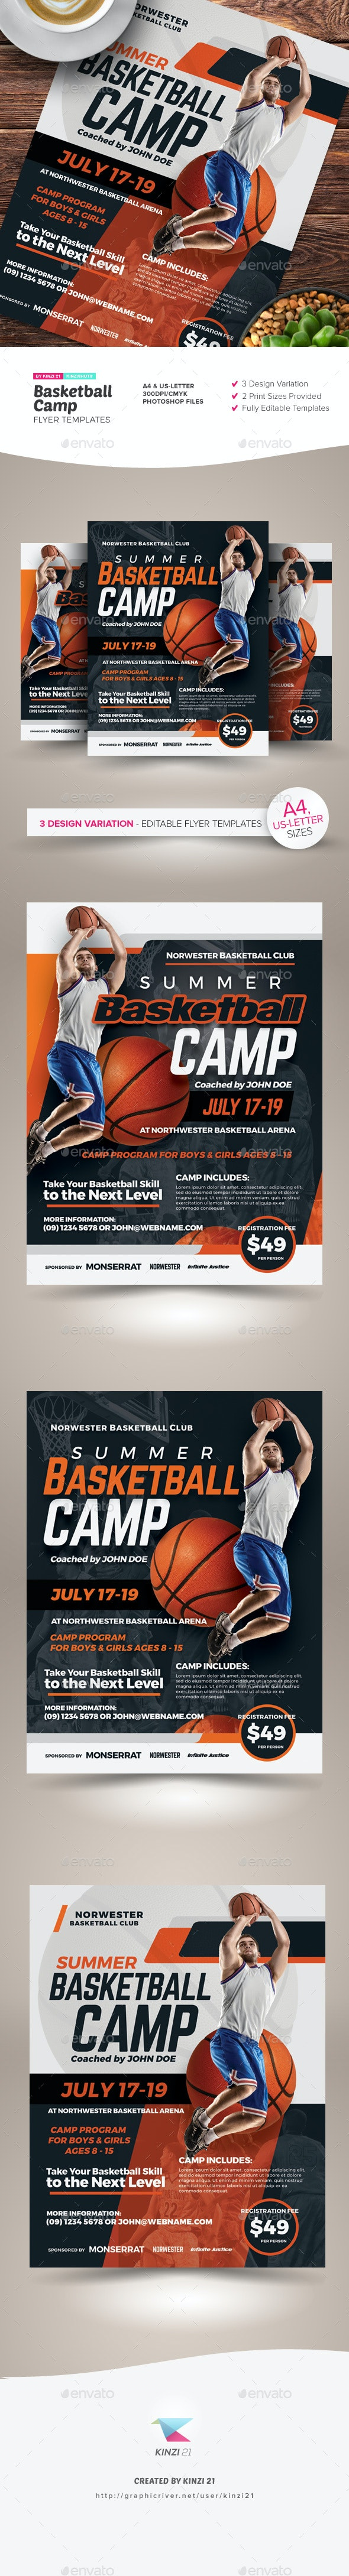 Basketball Camp Flyer Templates - Sports Events